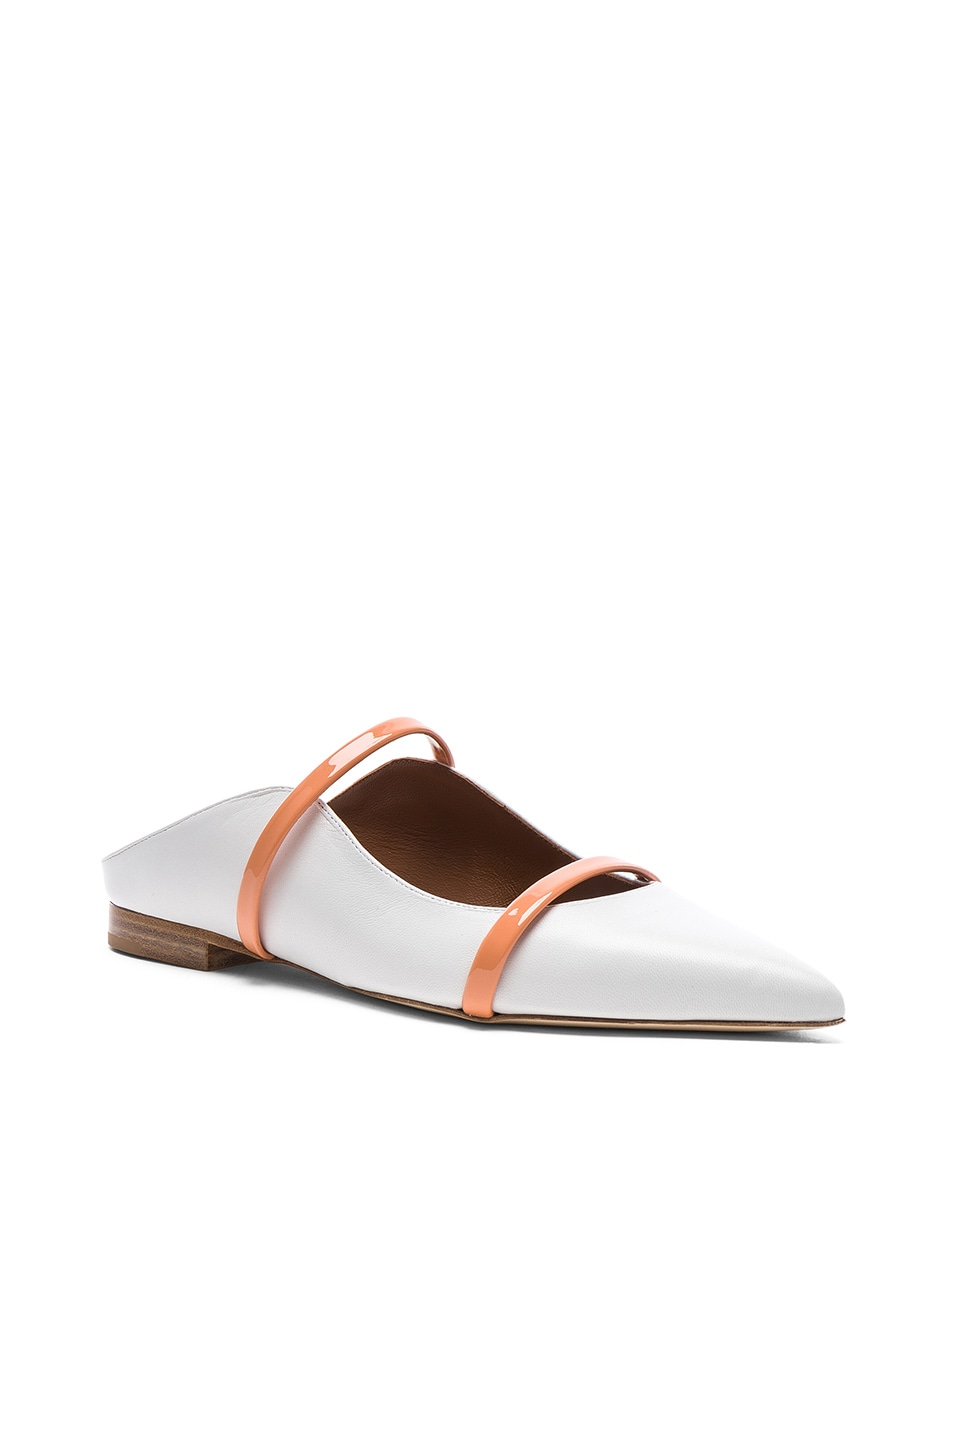 Image 2 of Malone Souliers Maureen Flat in White & Peach